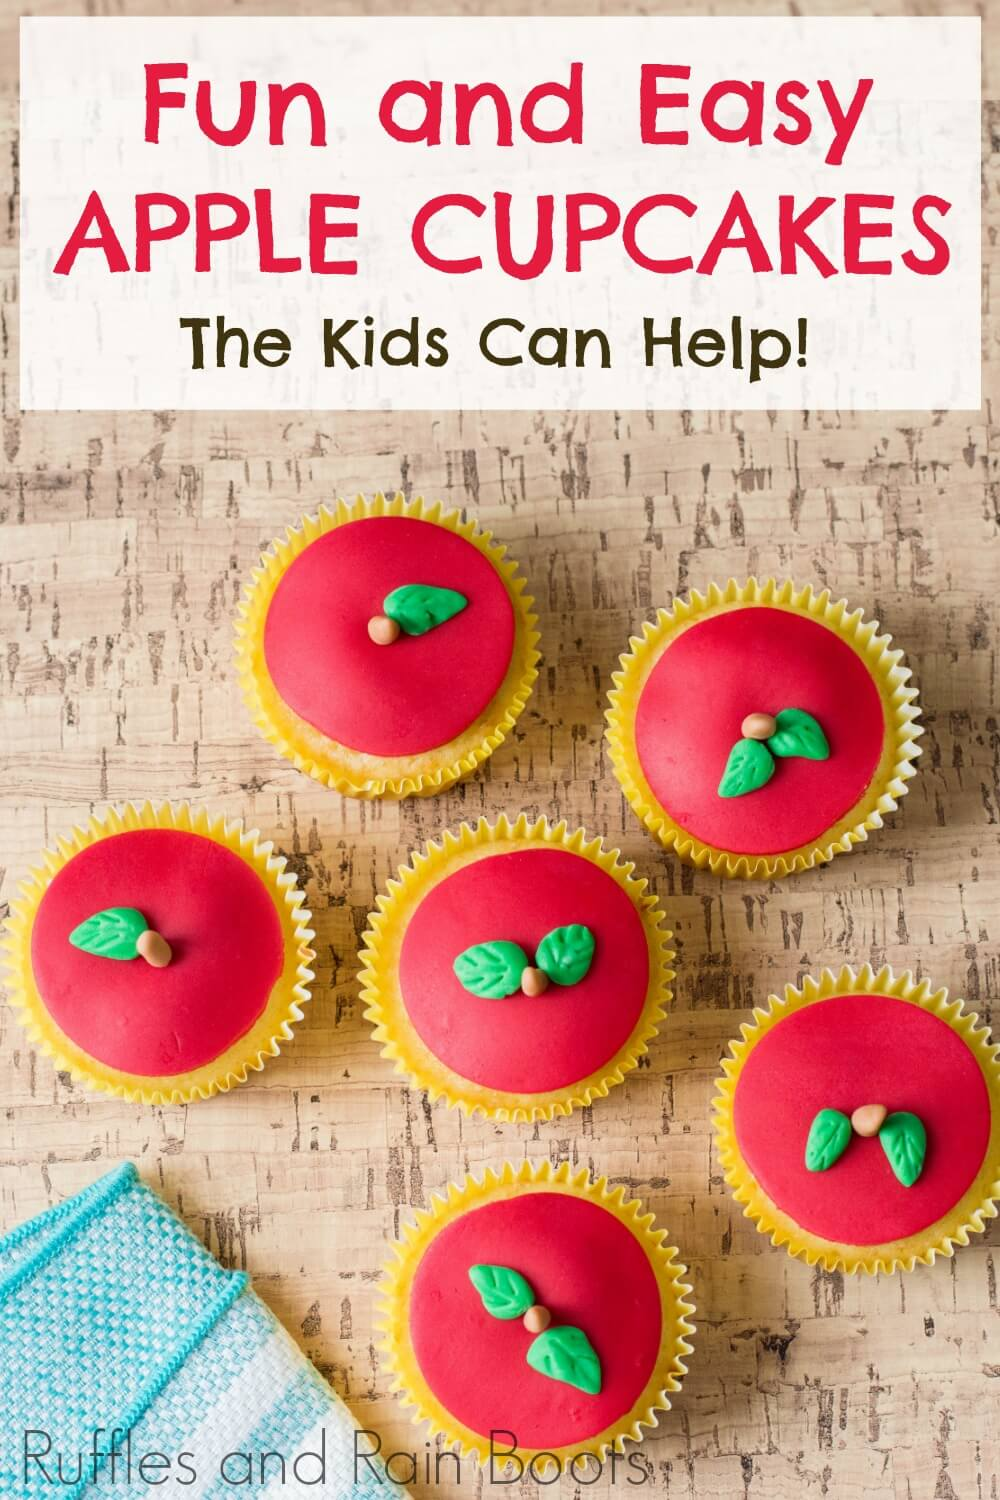 lots of apple shaped cupcakes made with fondant on a brown table with text which reads Fun and Easy Apple Cupcakes the kids can help!